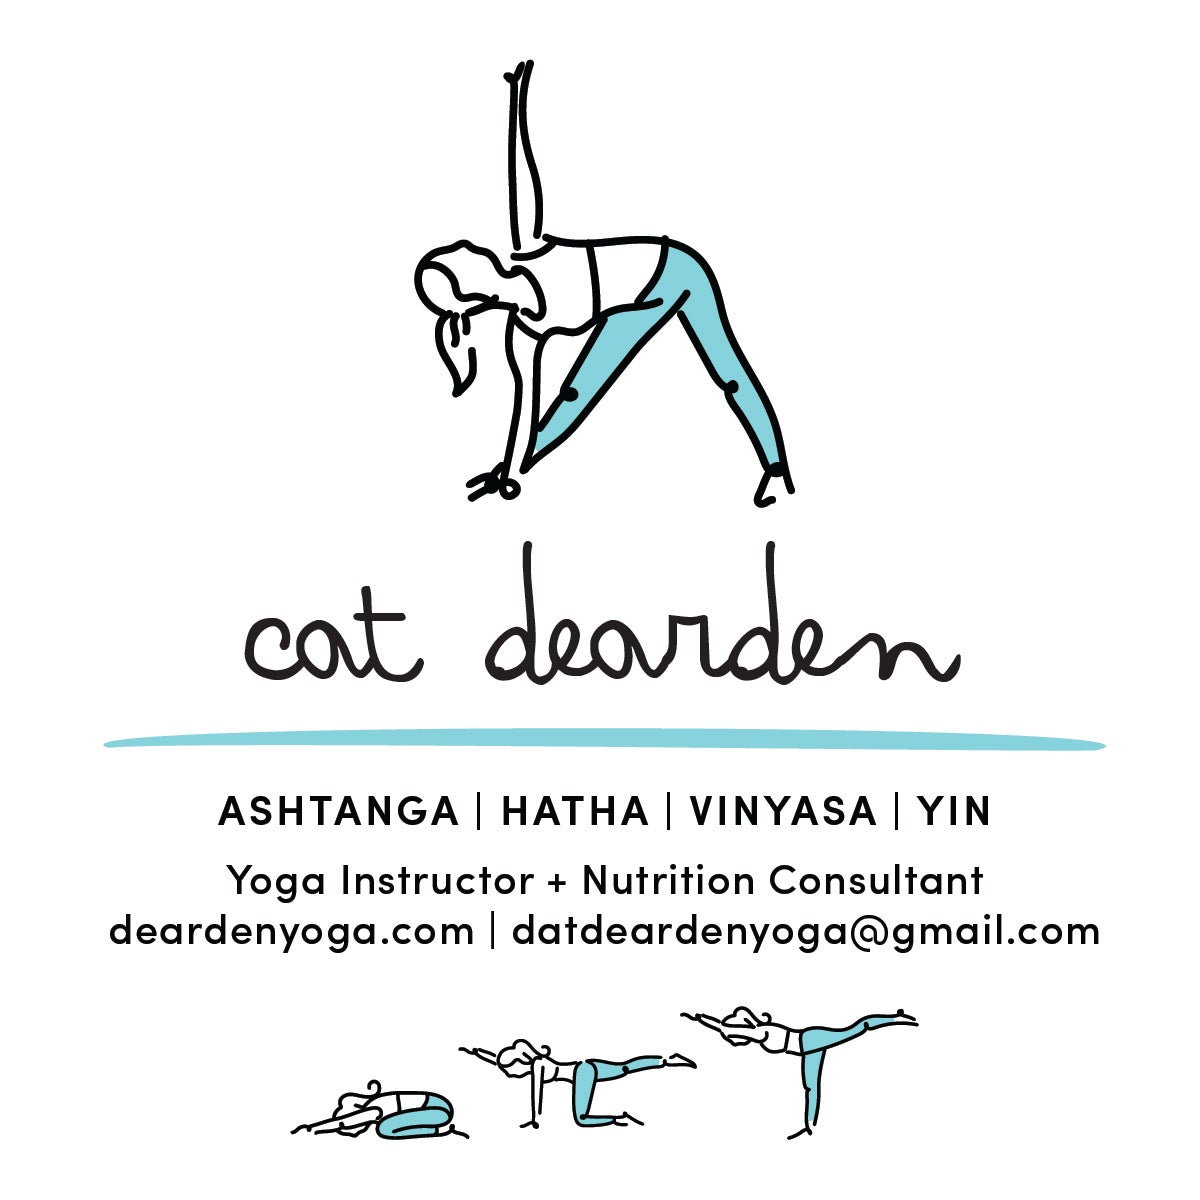 Yoga/Fitness Instructor Business Cards